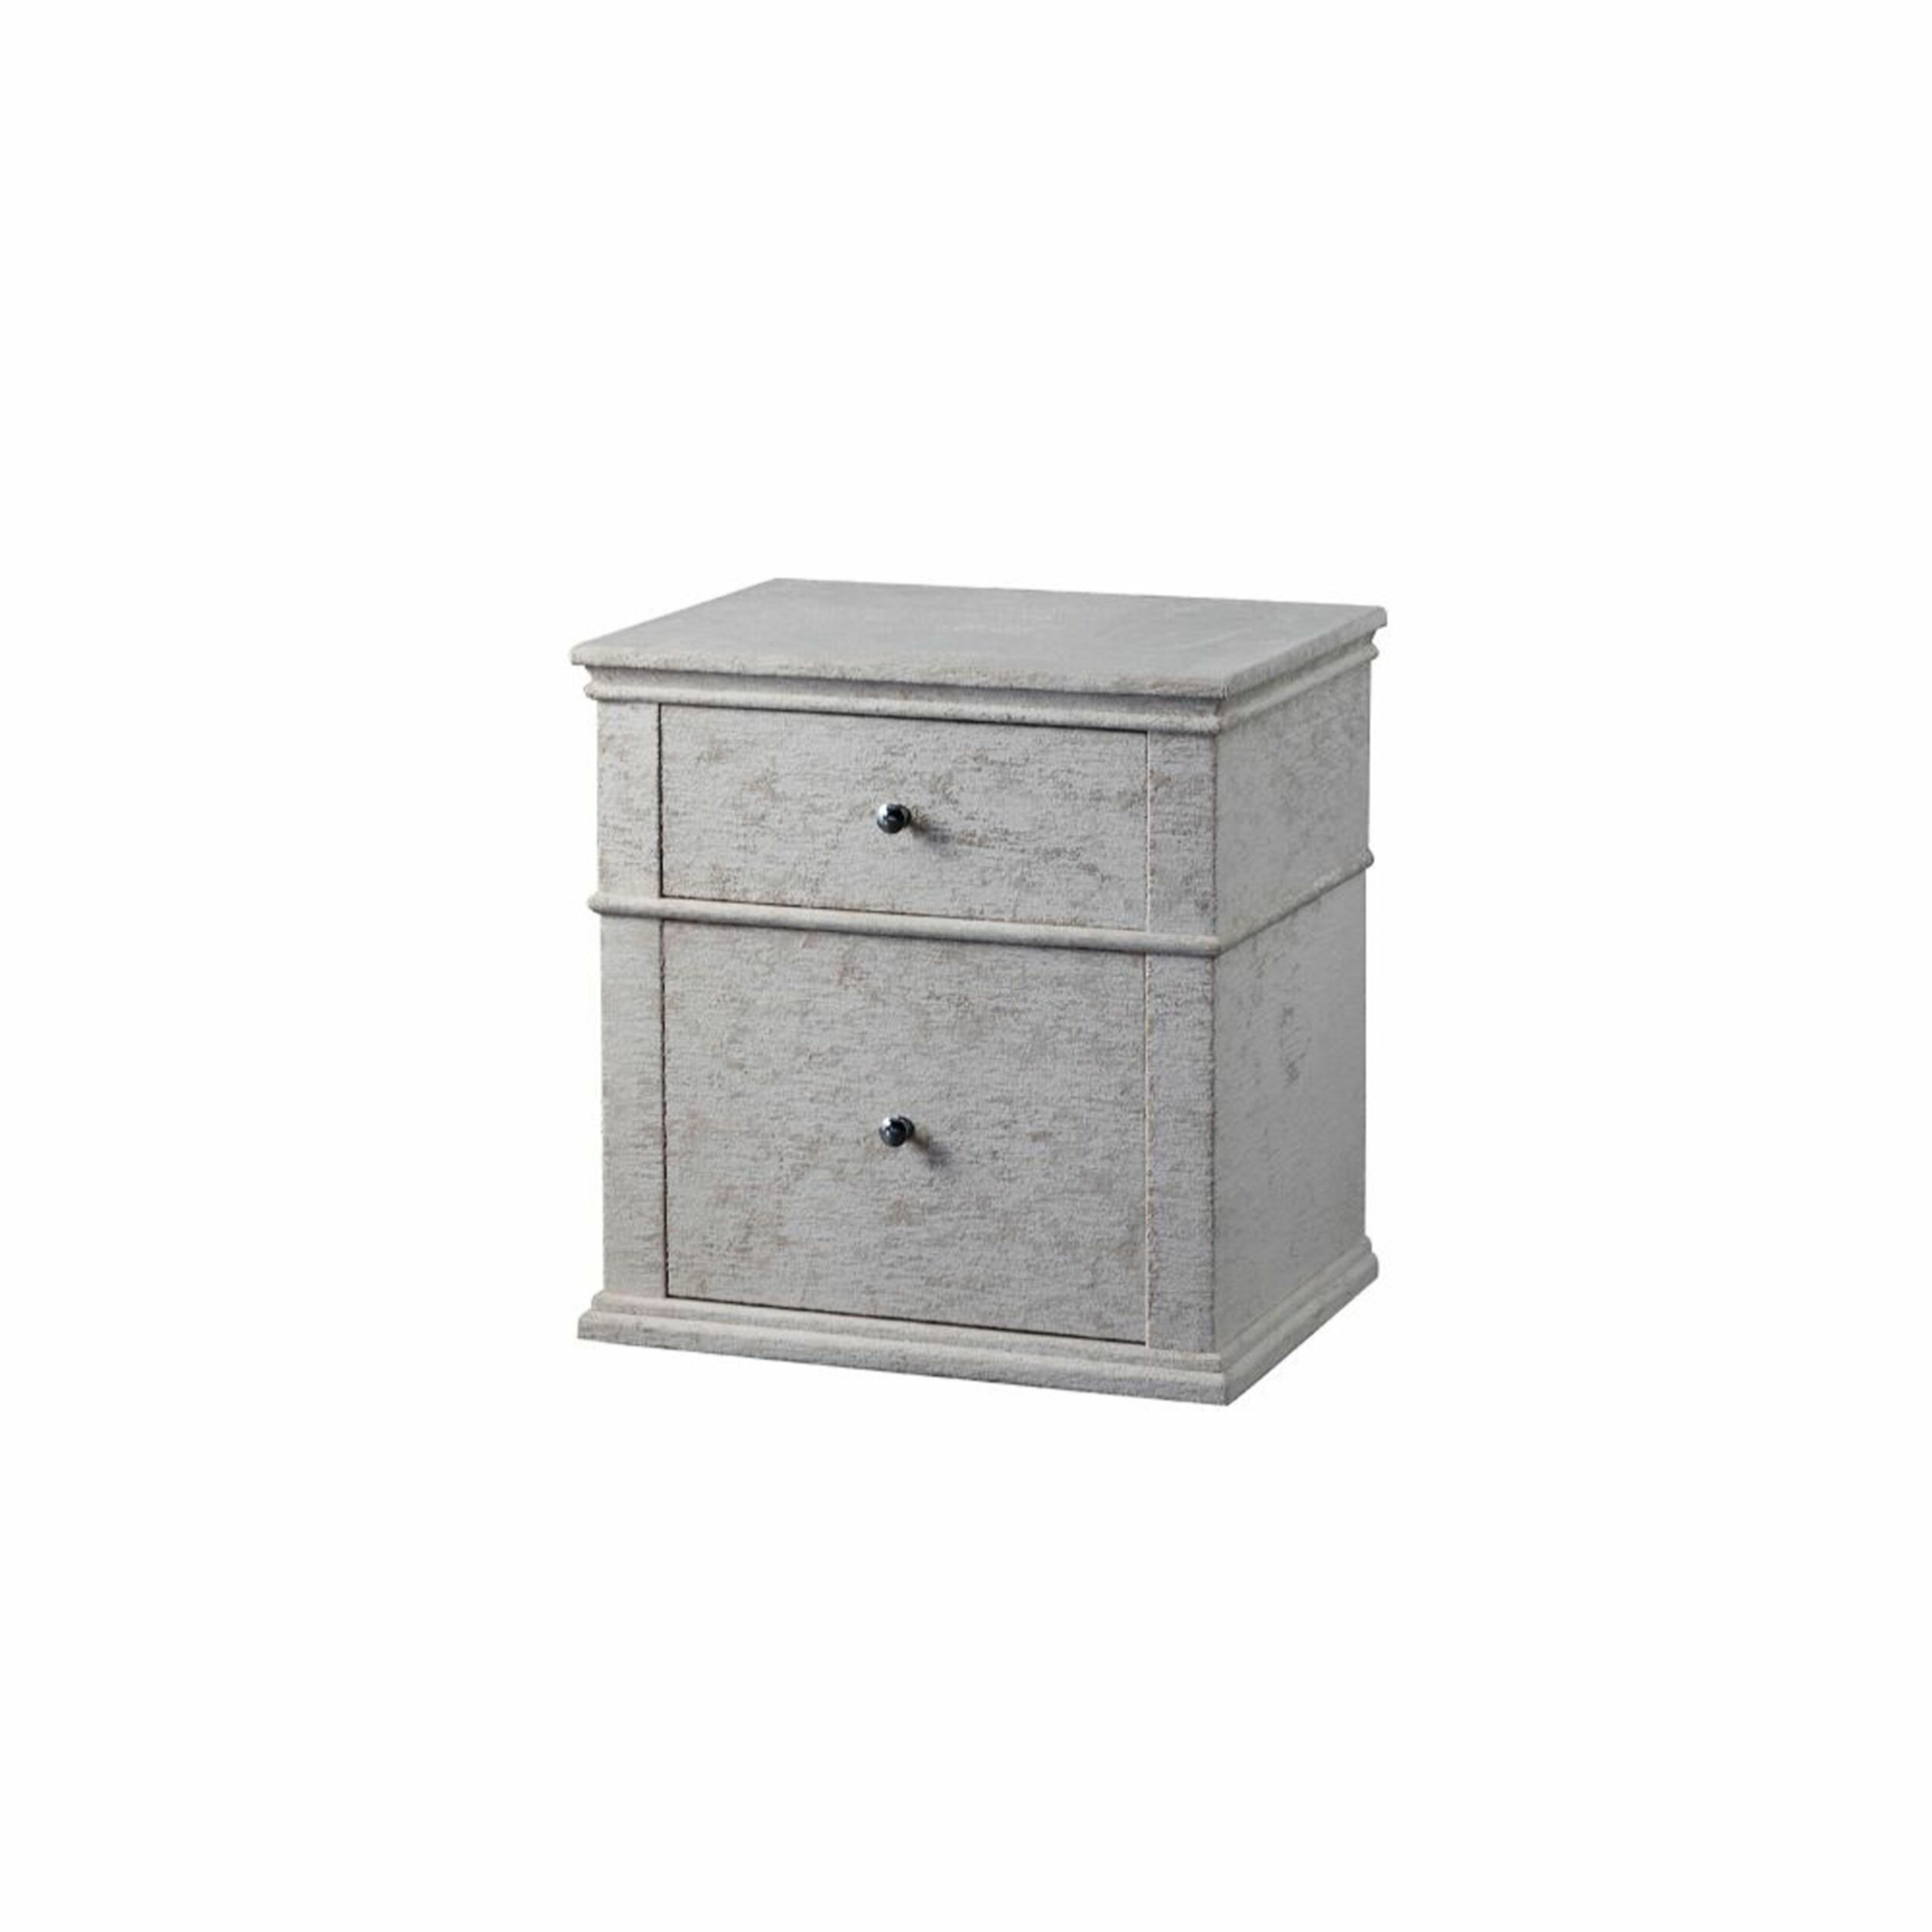 Grable Fabric Upholstered Wooden 2 Drawer Nightstand